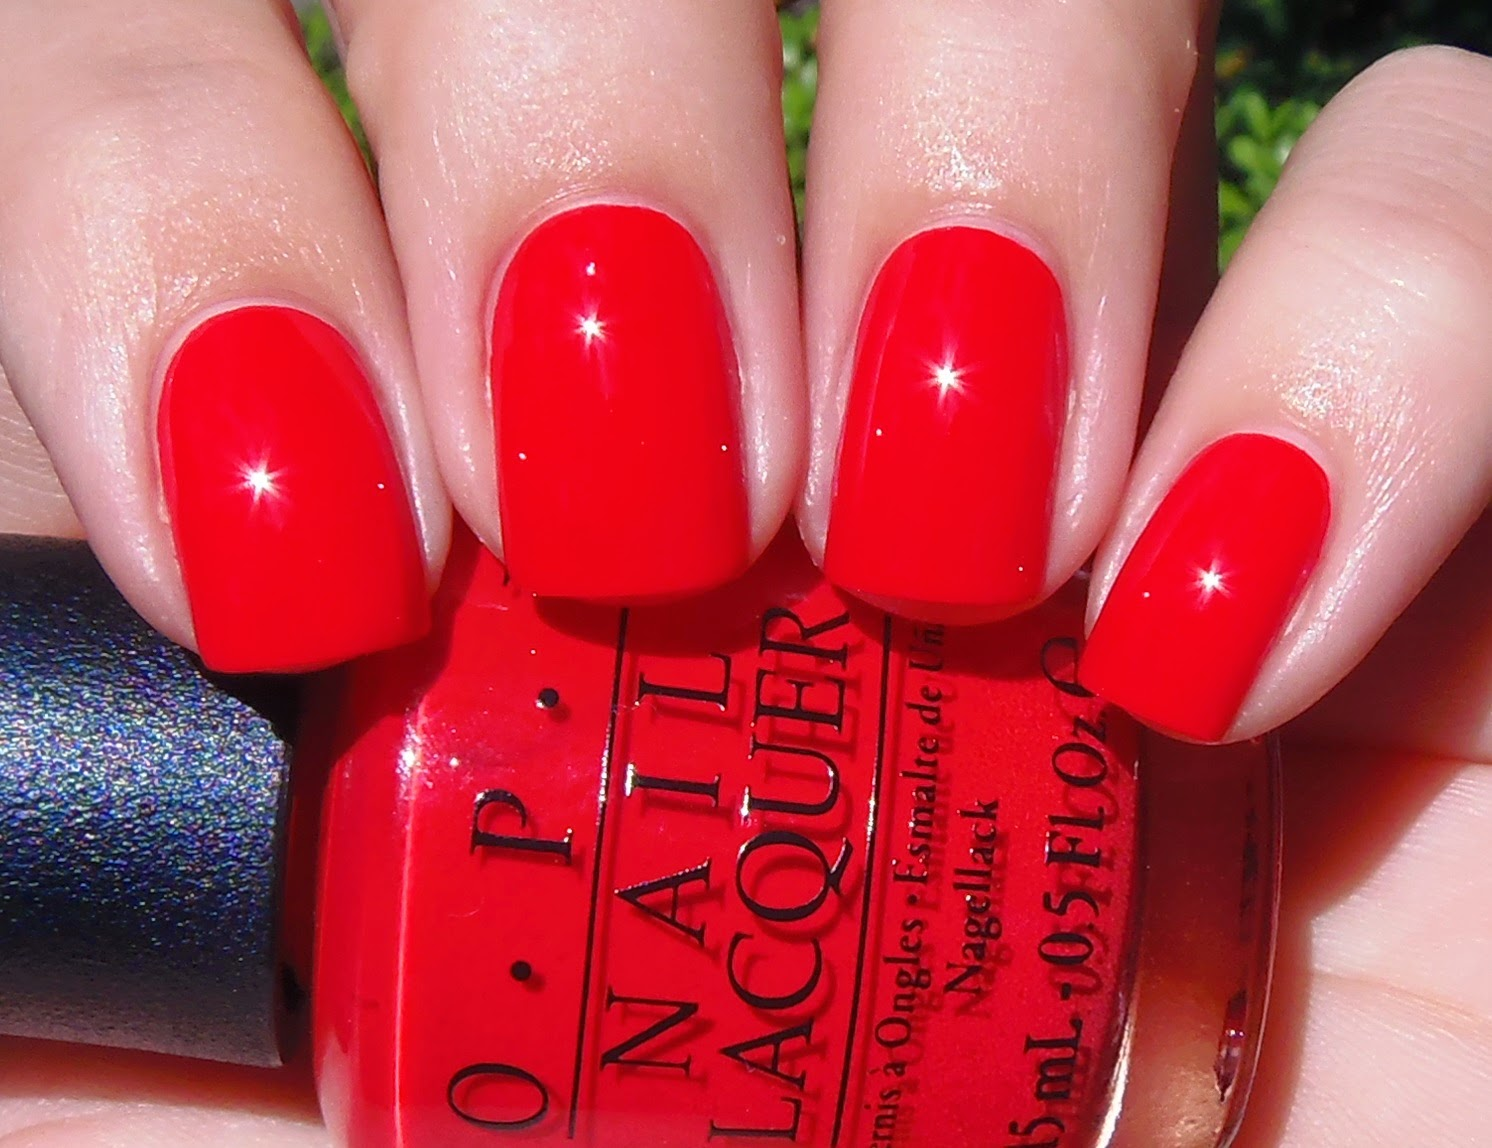 Sparkly Vernis Opi Coca Cola Red Is A Bright Red Creme